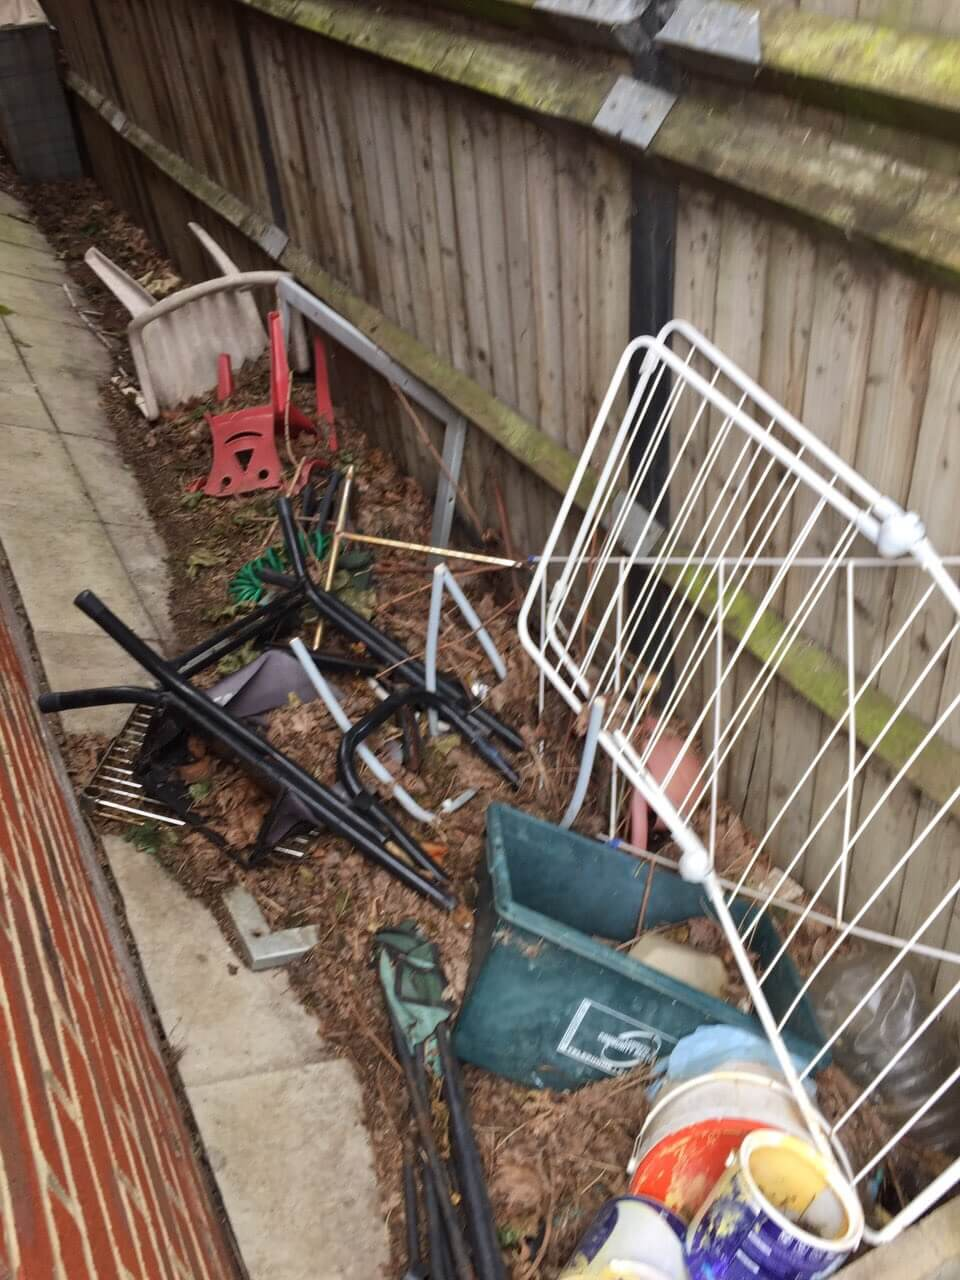 cellar clearance Bounds Green